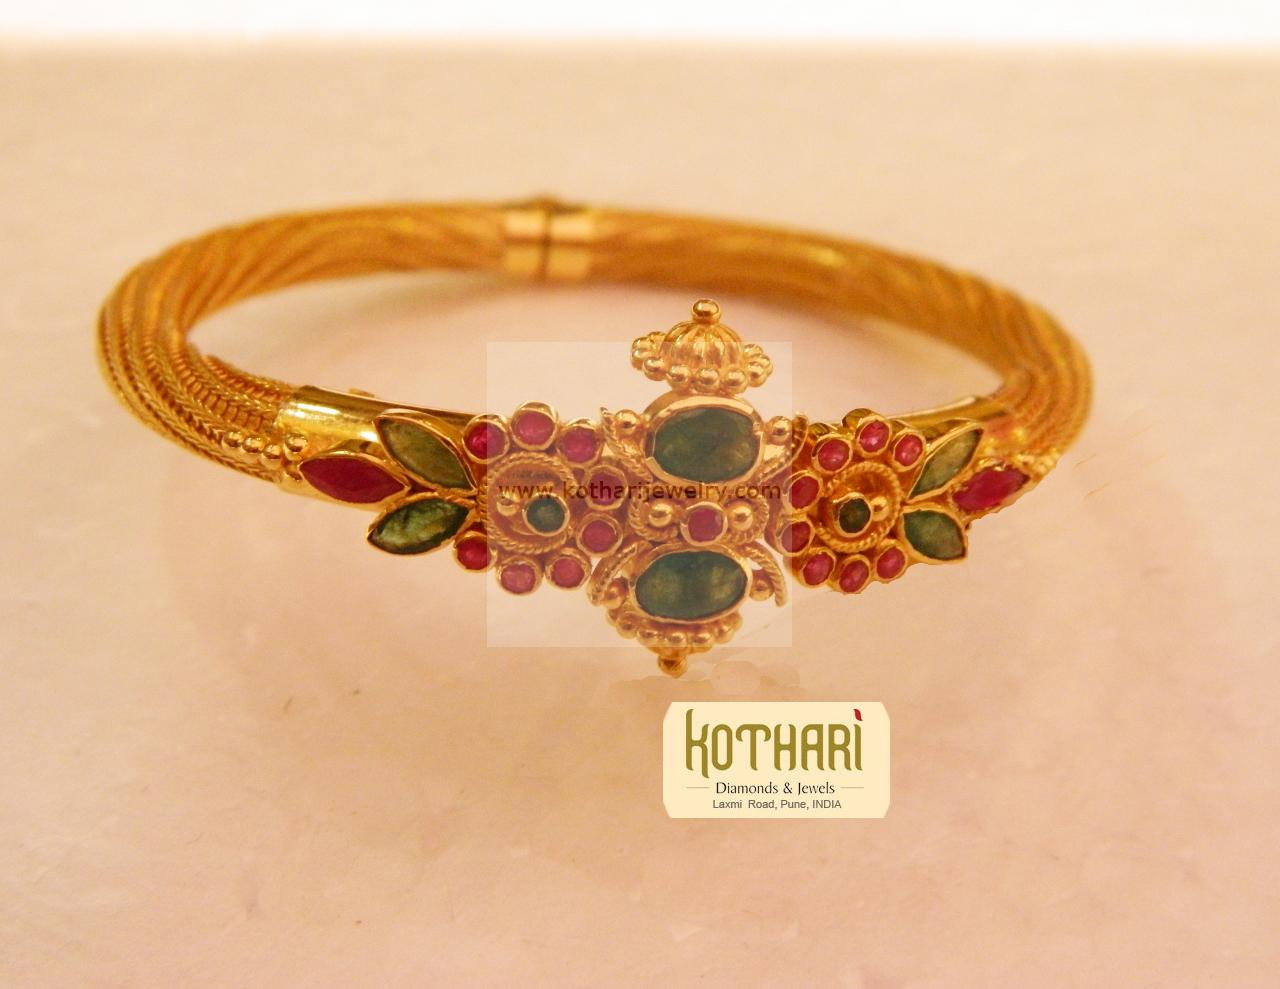 and bridal store m online buy cost bangles antique s plated india gold bangle how nice a much zoom women bracelets does